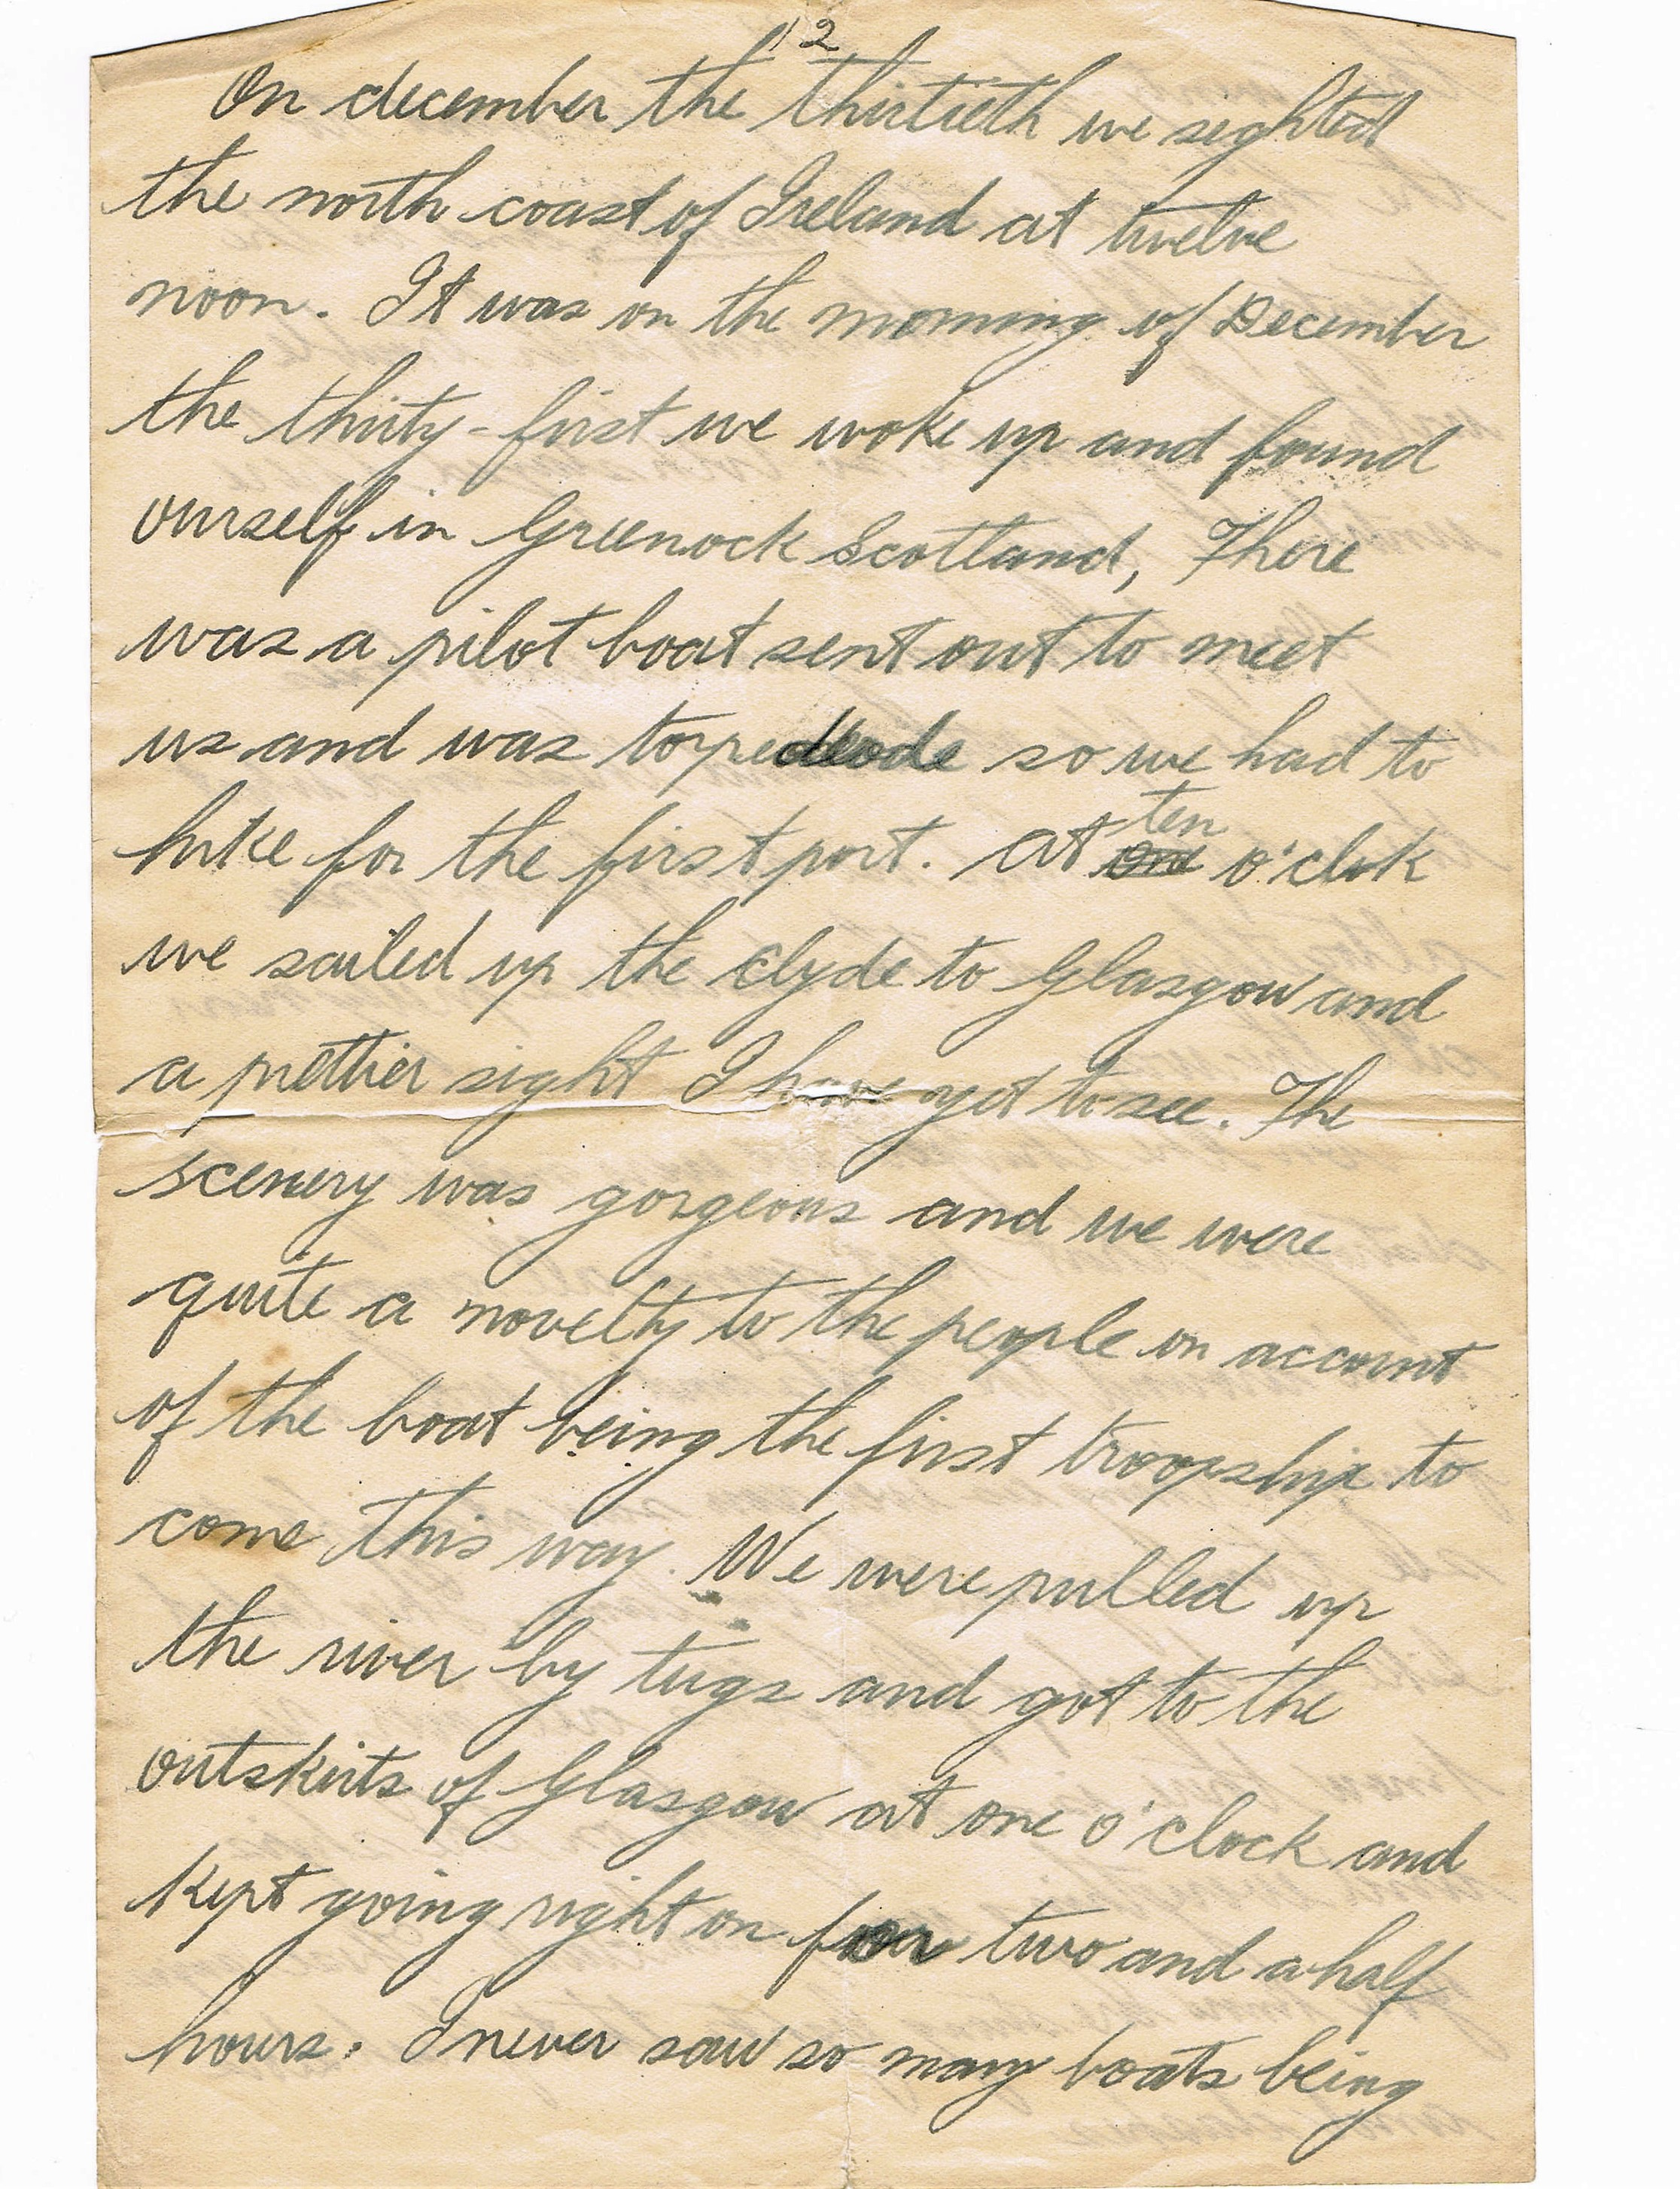 12th page of handwritten letter